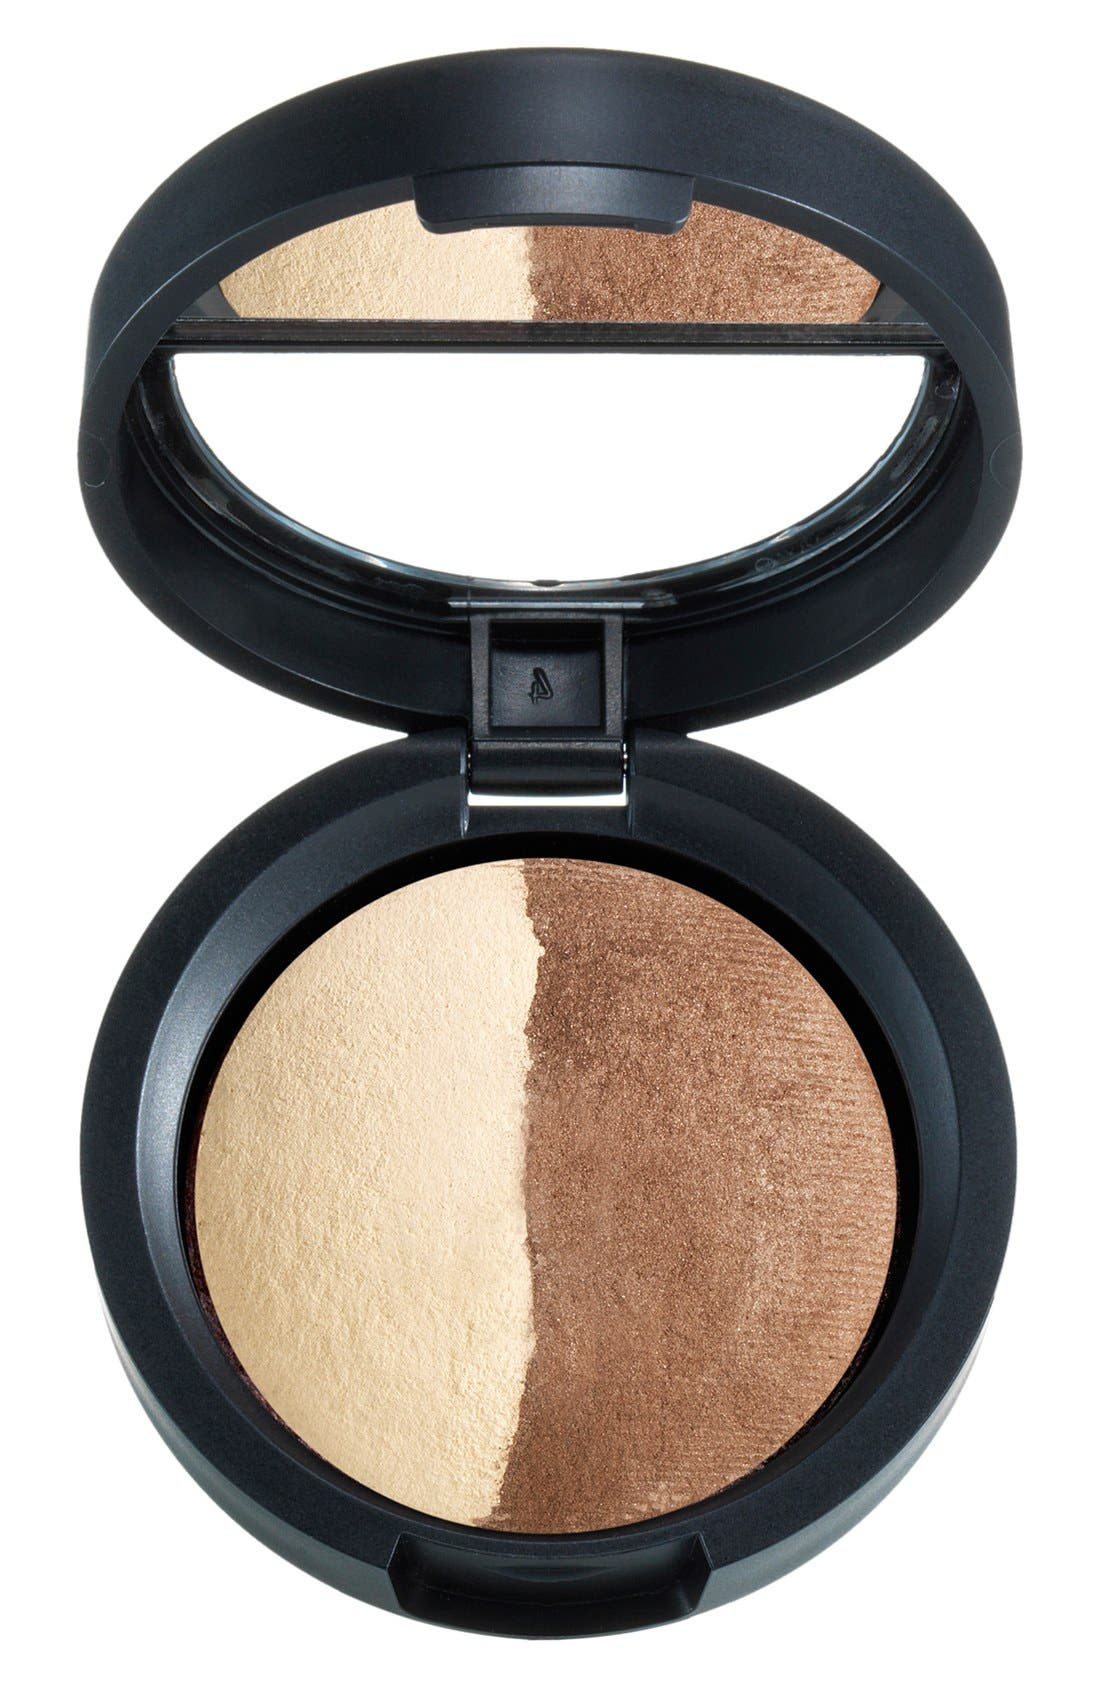 Baked Color Intense Eyeshadow Duo,                         Main,                         color, 001